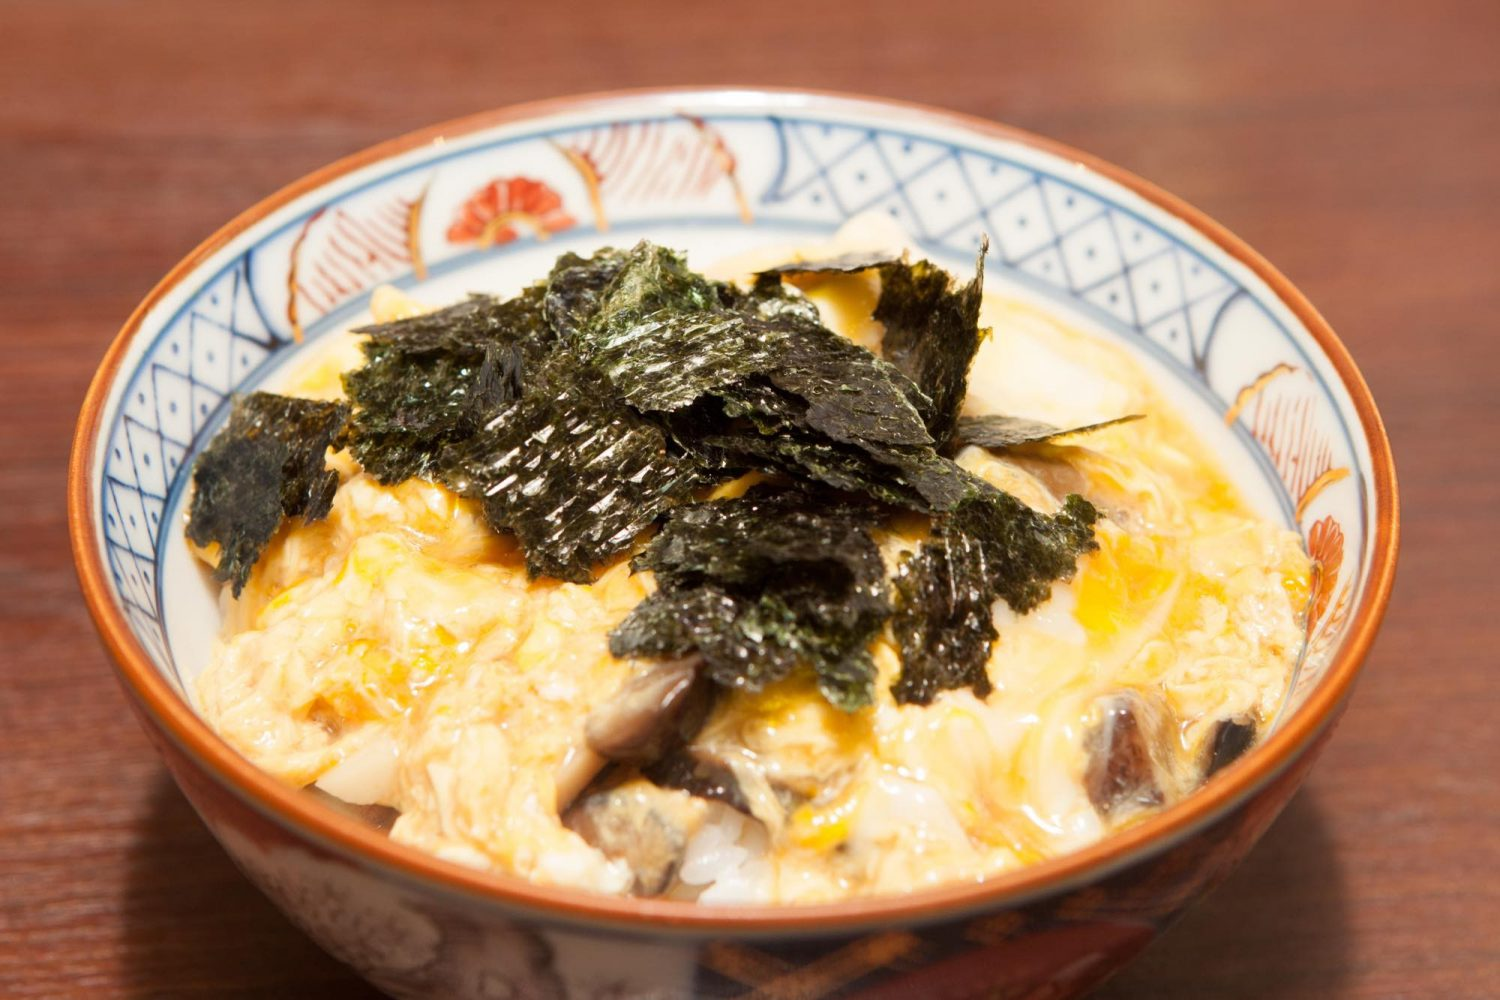 KONOHA-DON(このは丼): Rice topped with fish cakes, mushrooms & partly-cooked egg